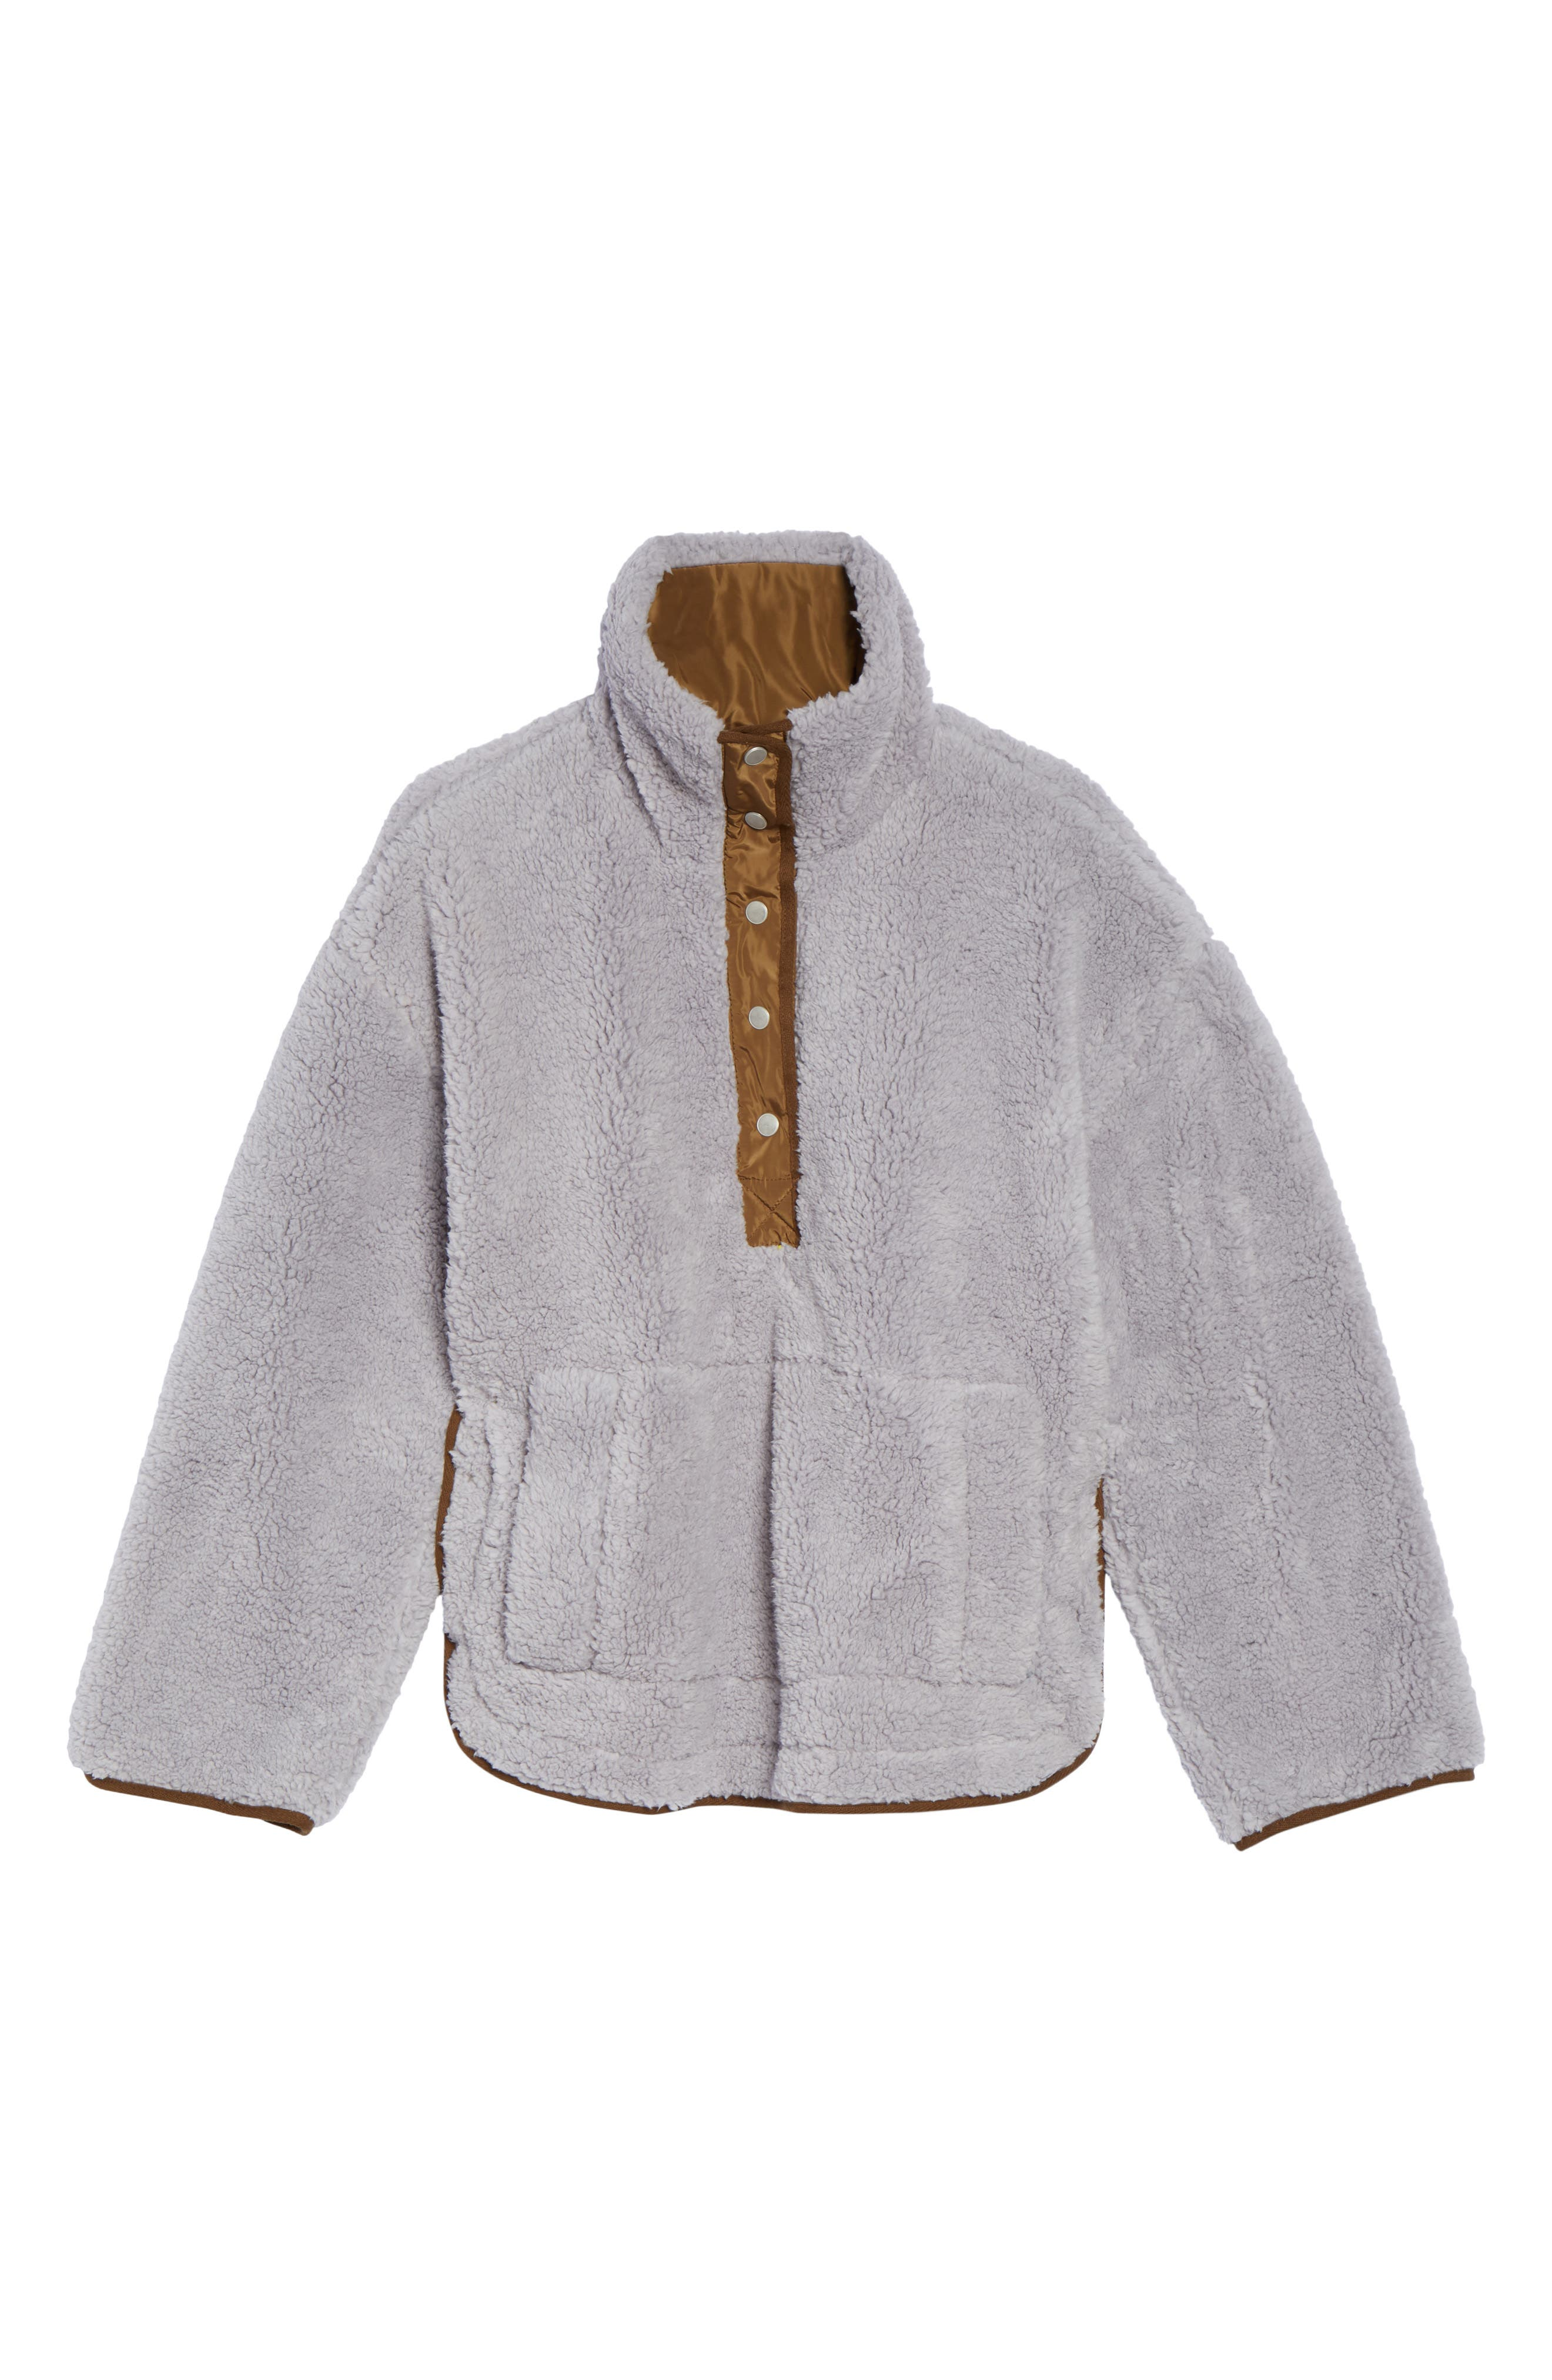 Free People Oh So Cozy Fleece Pullover,                             Alternate thumbnail 8, color,                             Grey